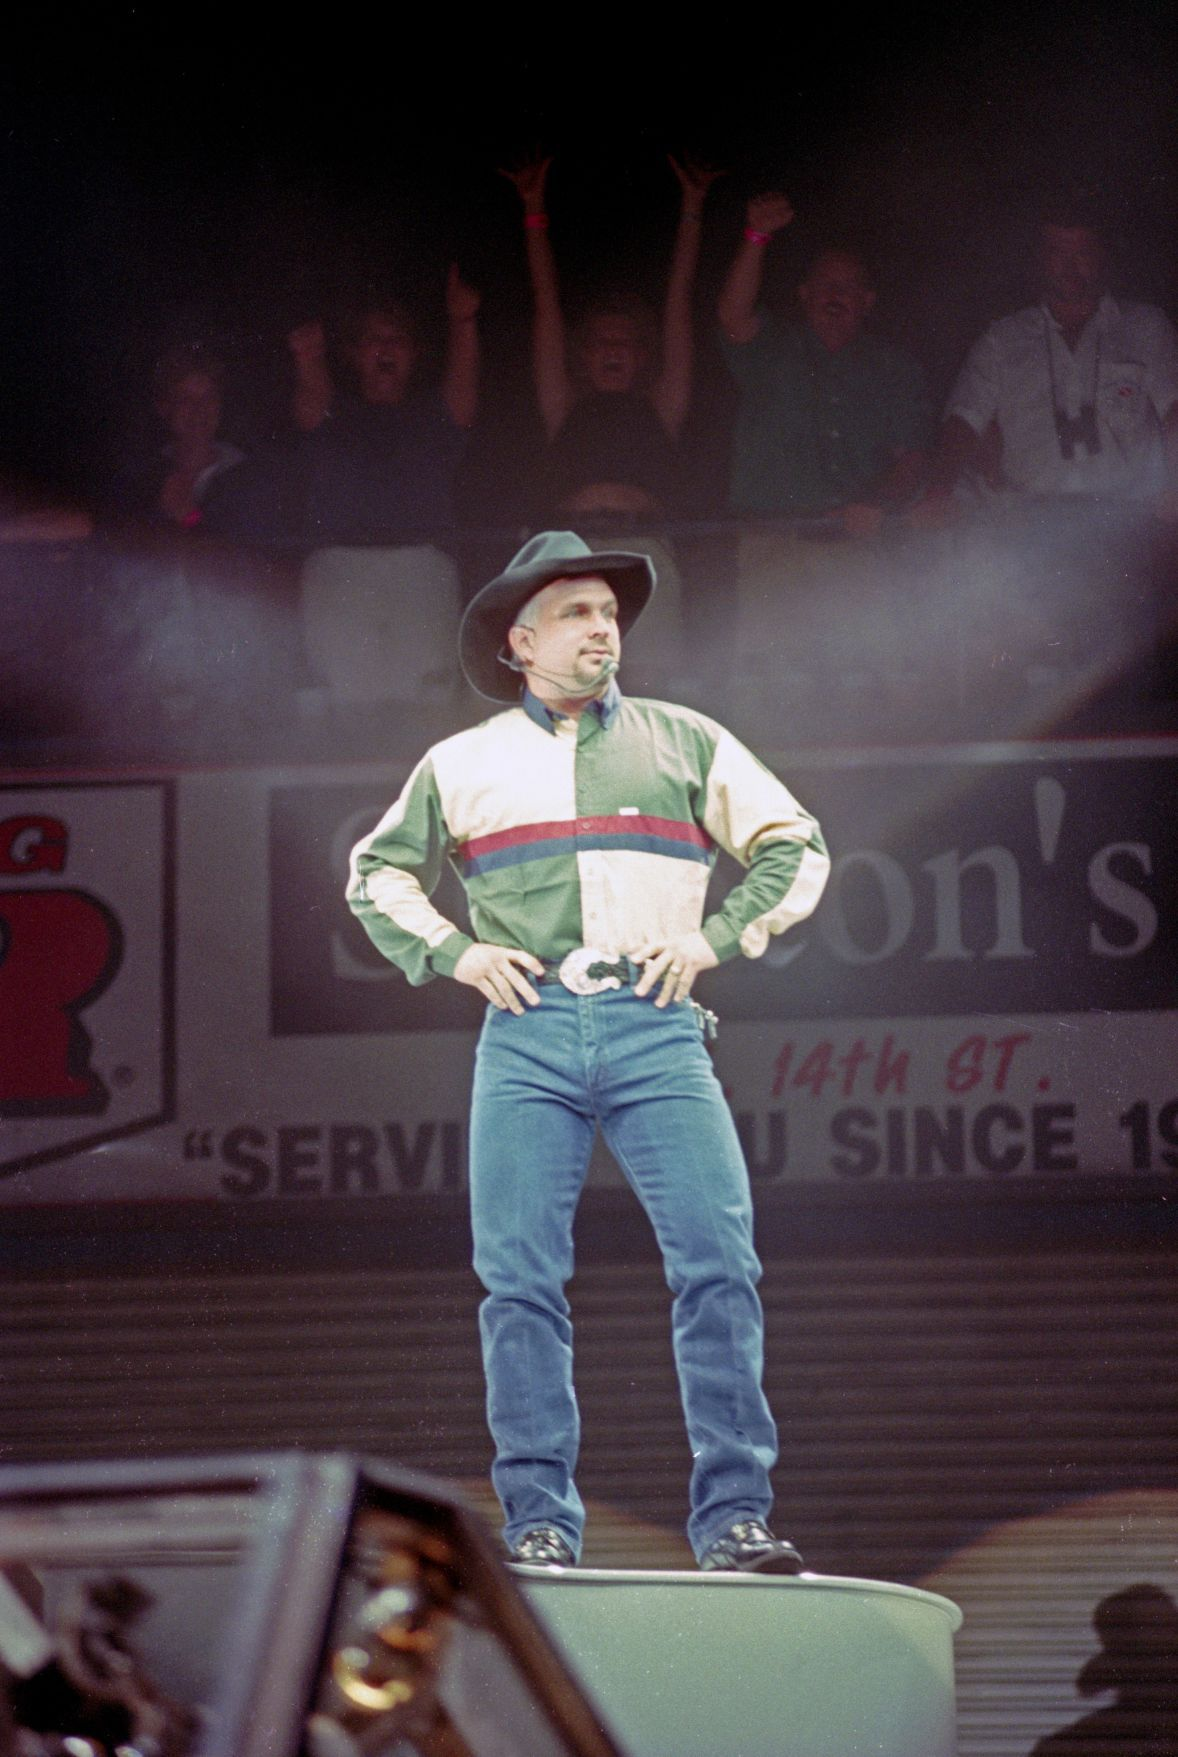 Garth Brooks performs in front of a sold-out audience at the Billings Metra, July 2, 1998